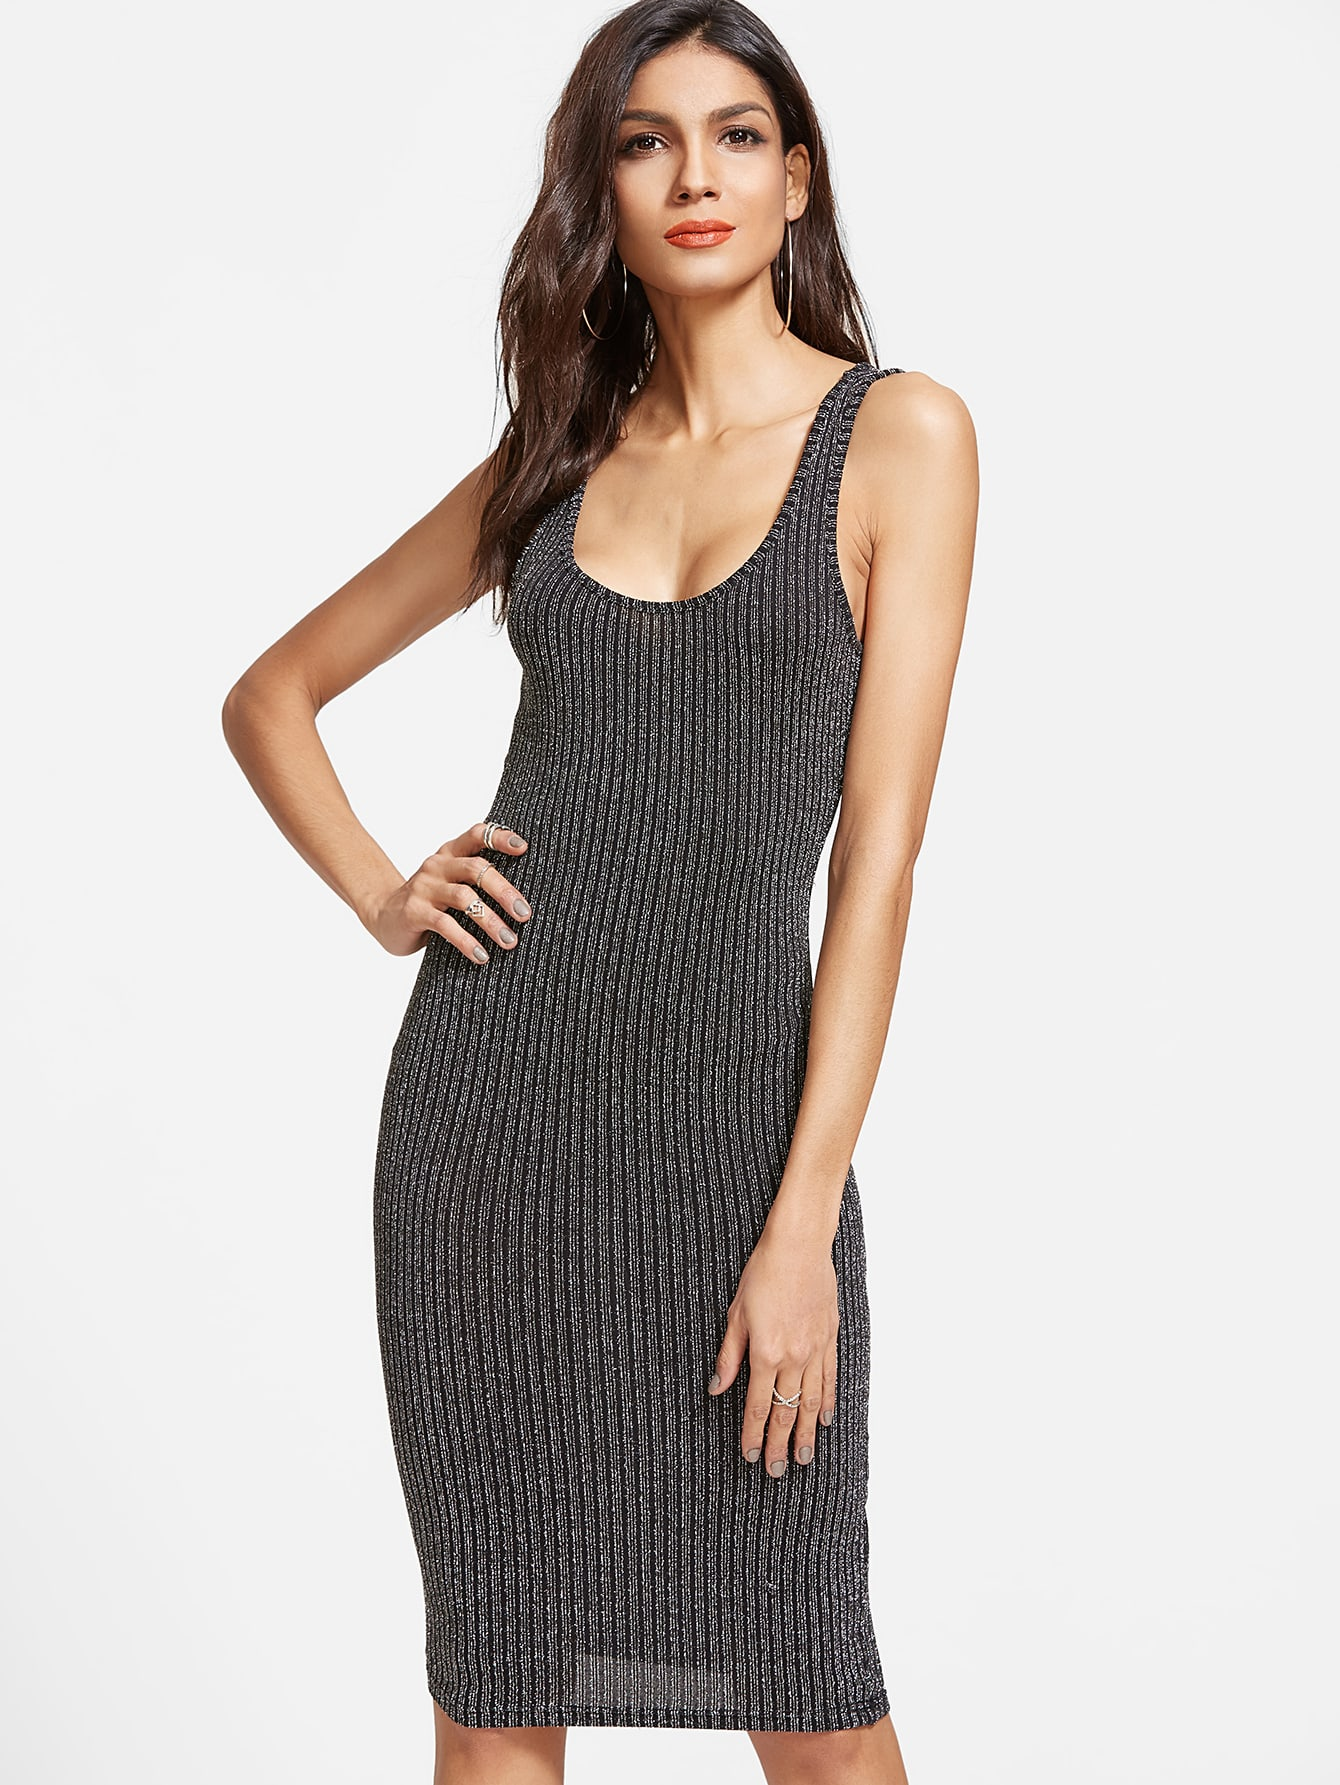 Black Ribbed Knit Bodycon Tank Dress dress170220701